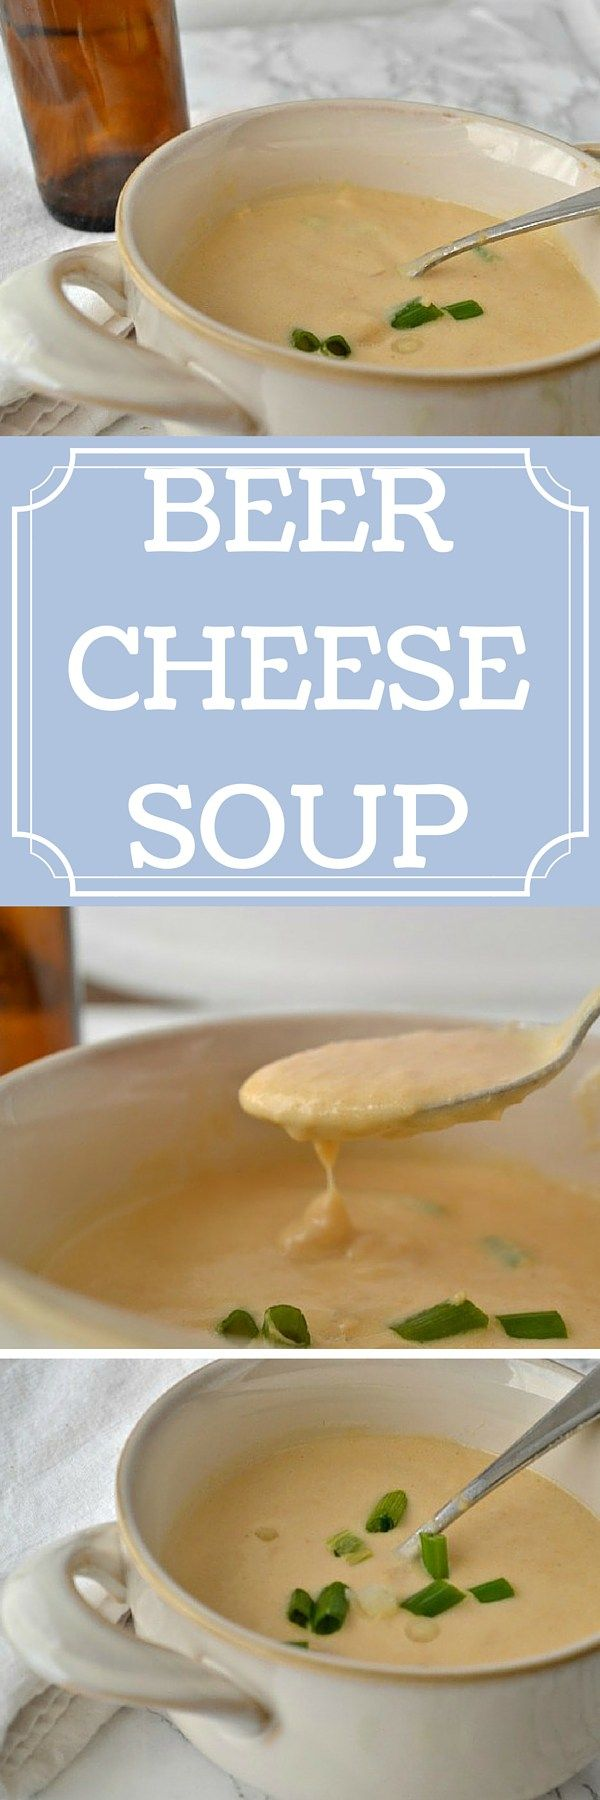 This beer cheese soup recipe is the ultimate comfort food! Make it for football watching, or on cold nights or for a tasty lunch treat.